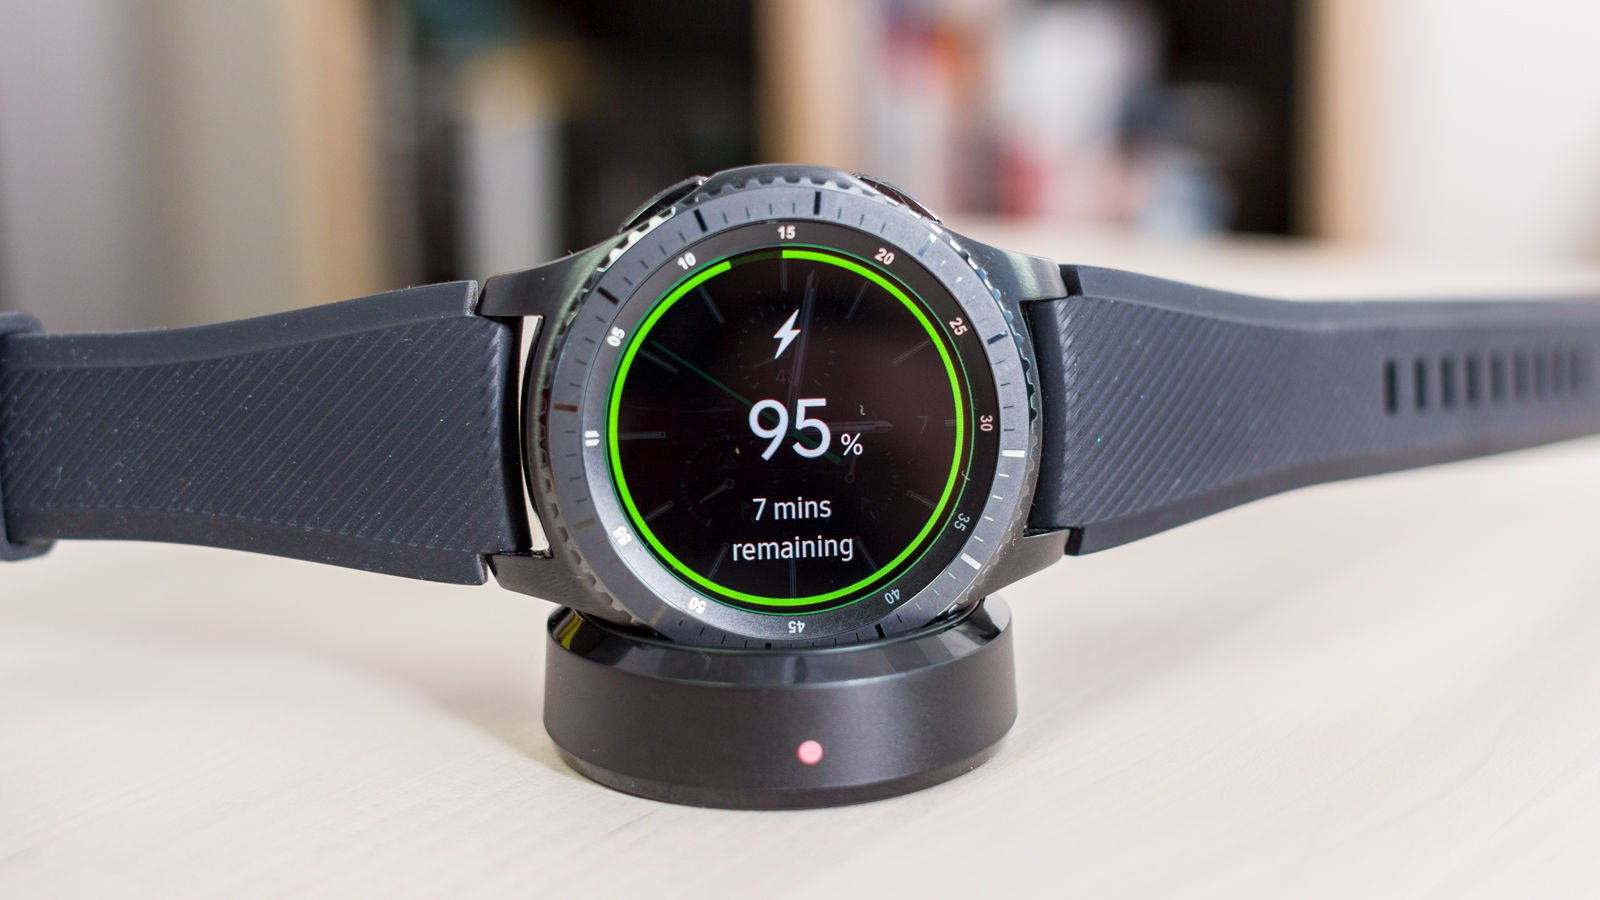 Samsung Gear S3 Review: A Great Watch for Android Owners